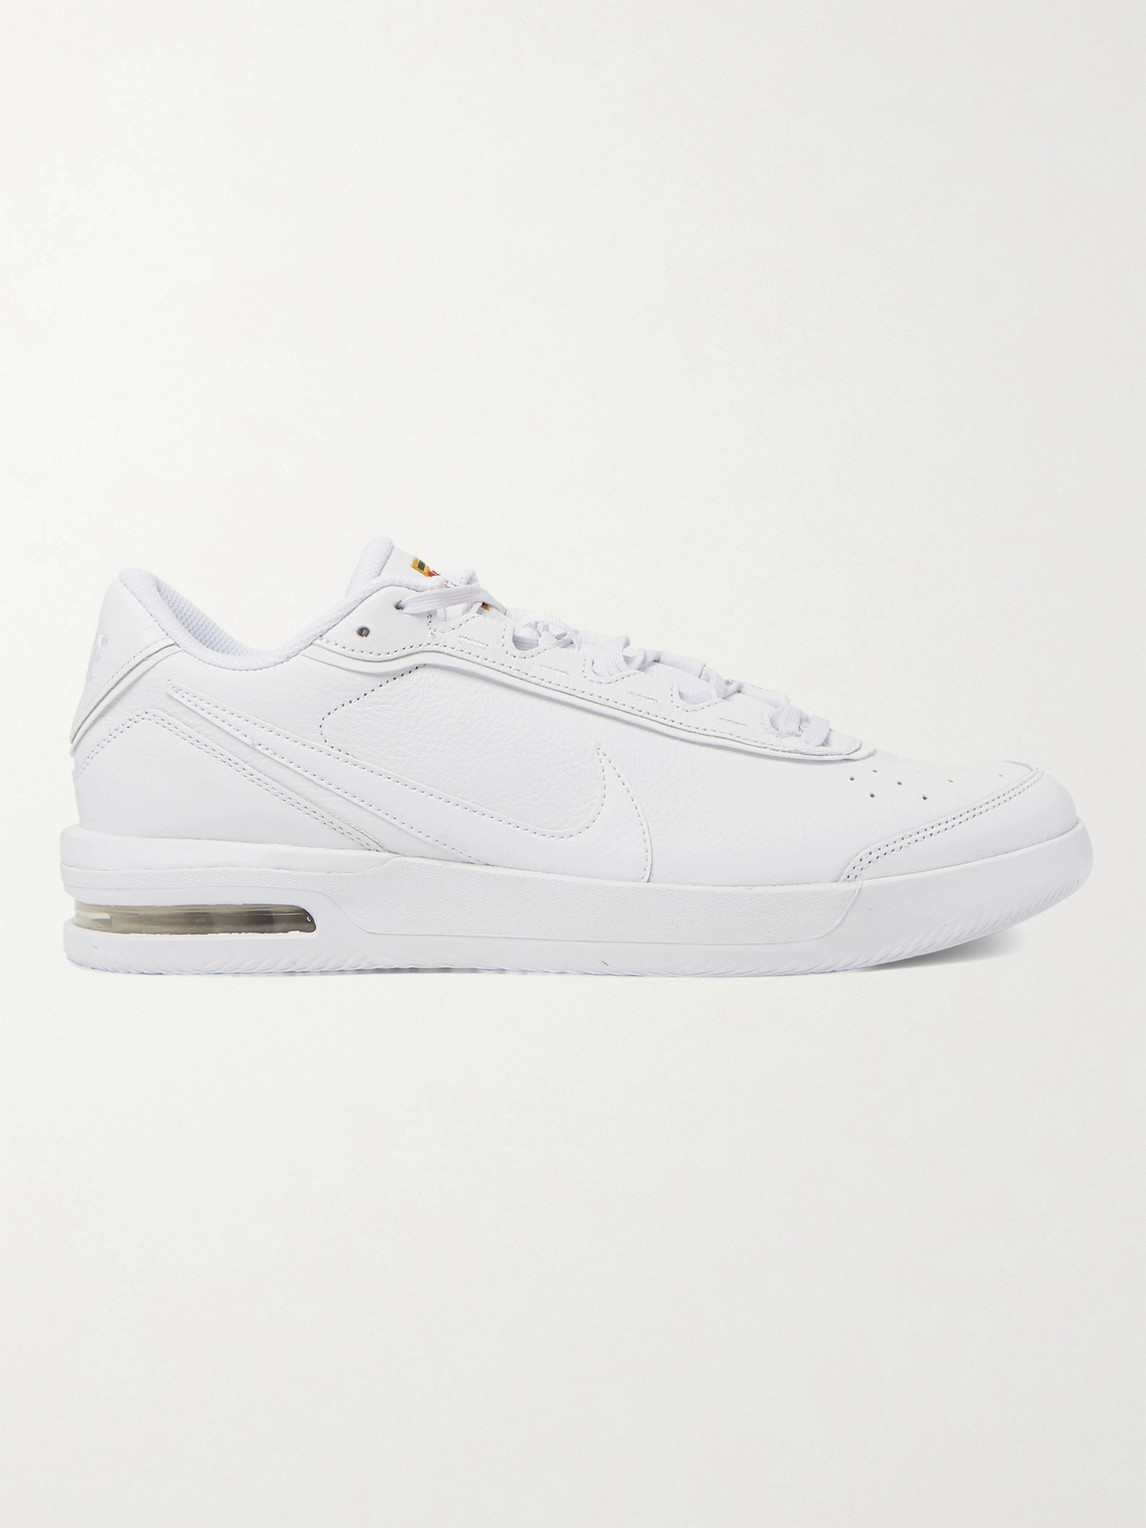 Nike Court Air Max Vapor Wing Premium Men's Tennis Shoe (white) - Clearance Sale In White,binary Blue,university Red,white